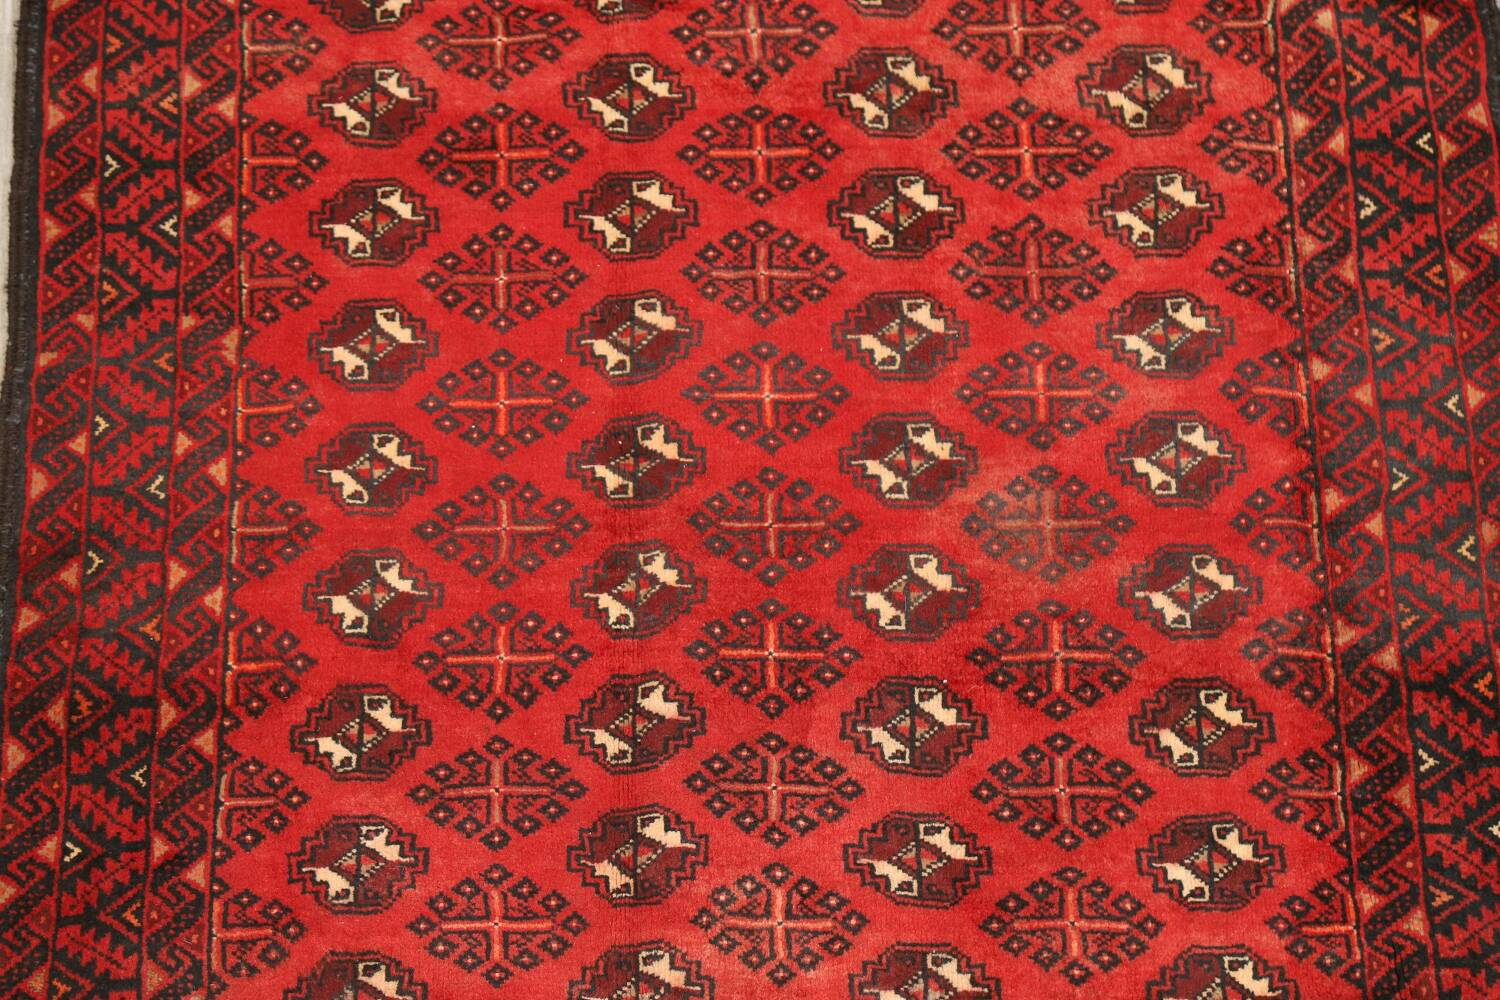 All-Over Red Geometric Balouch Persian Area Rug 4x7 image 4